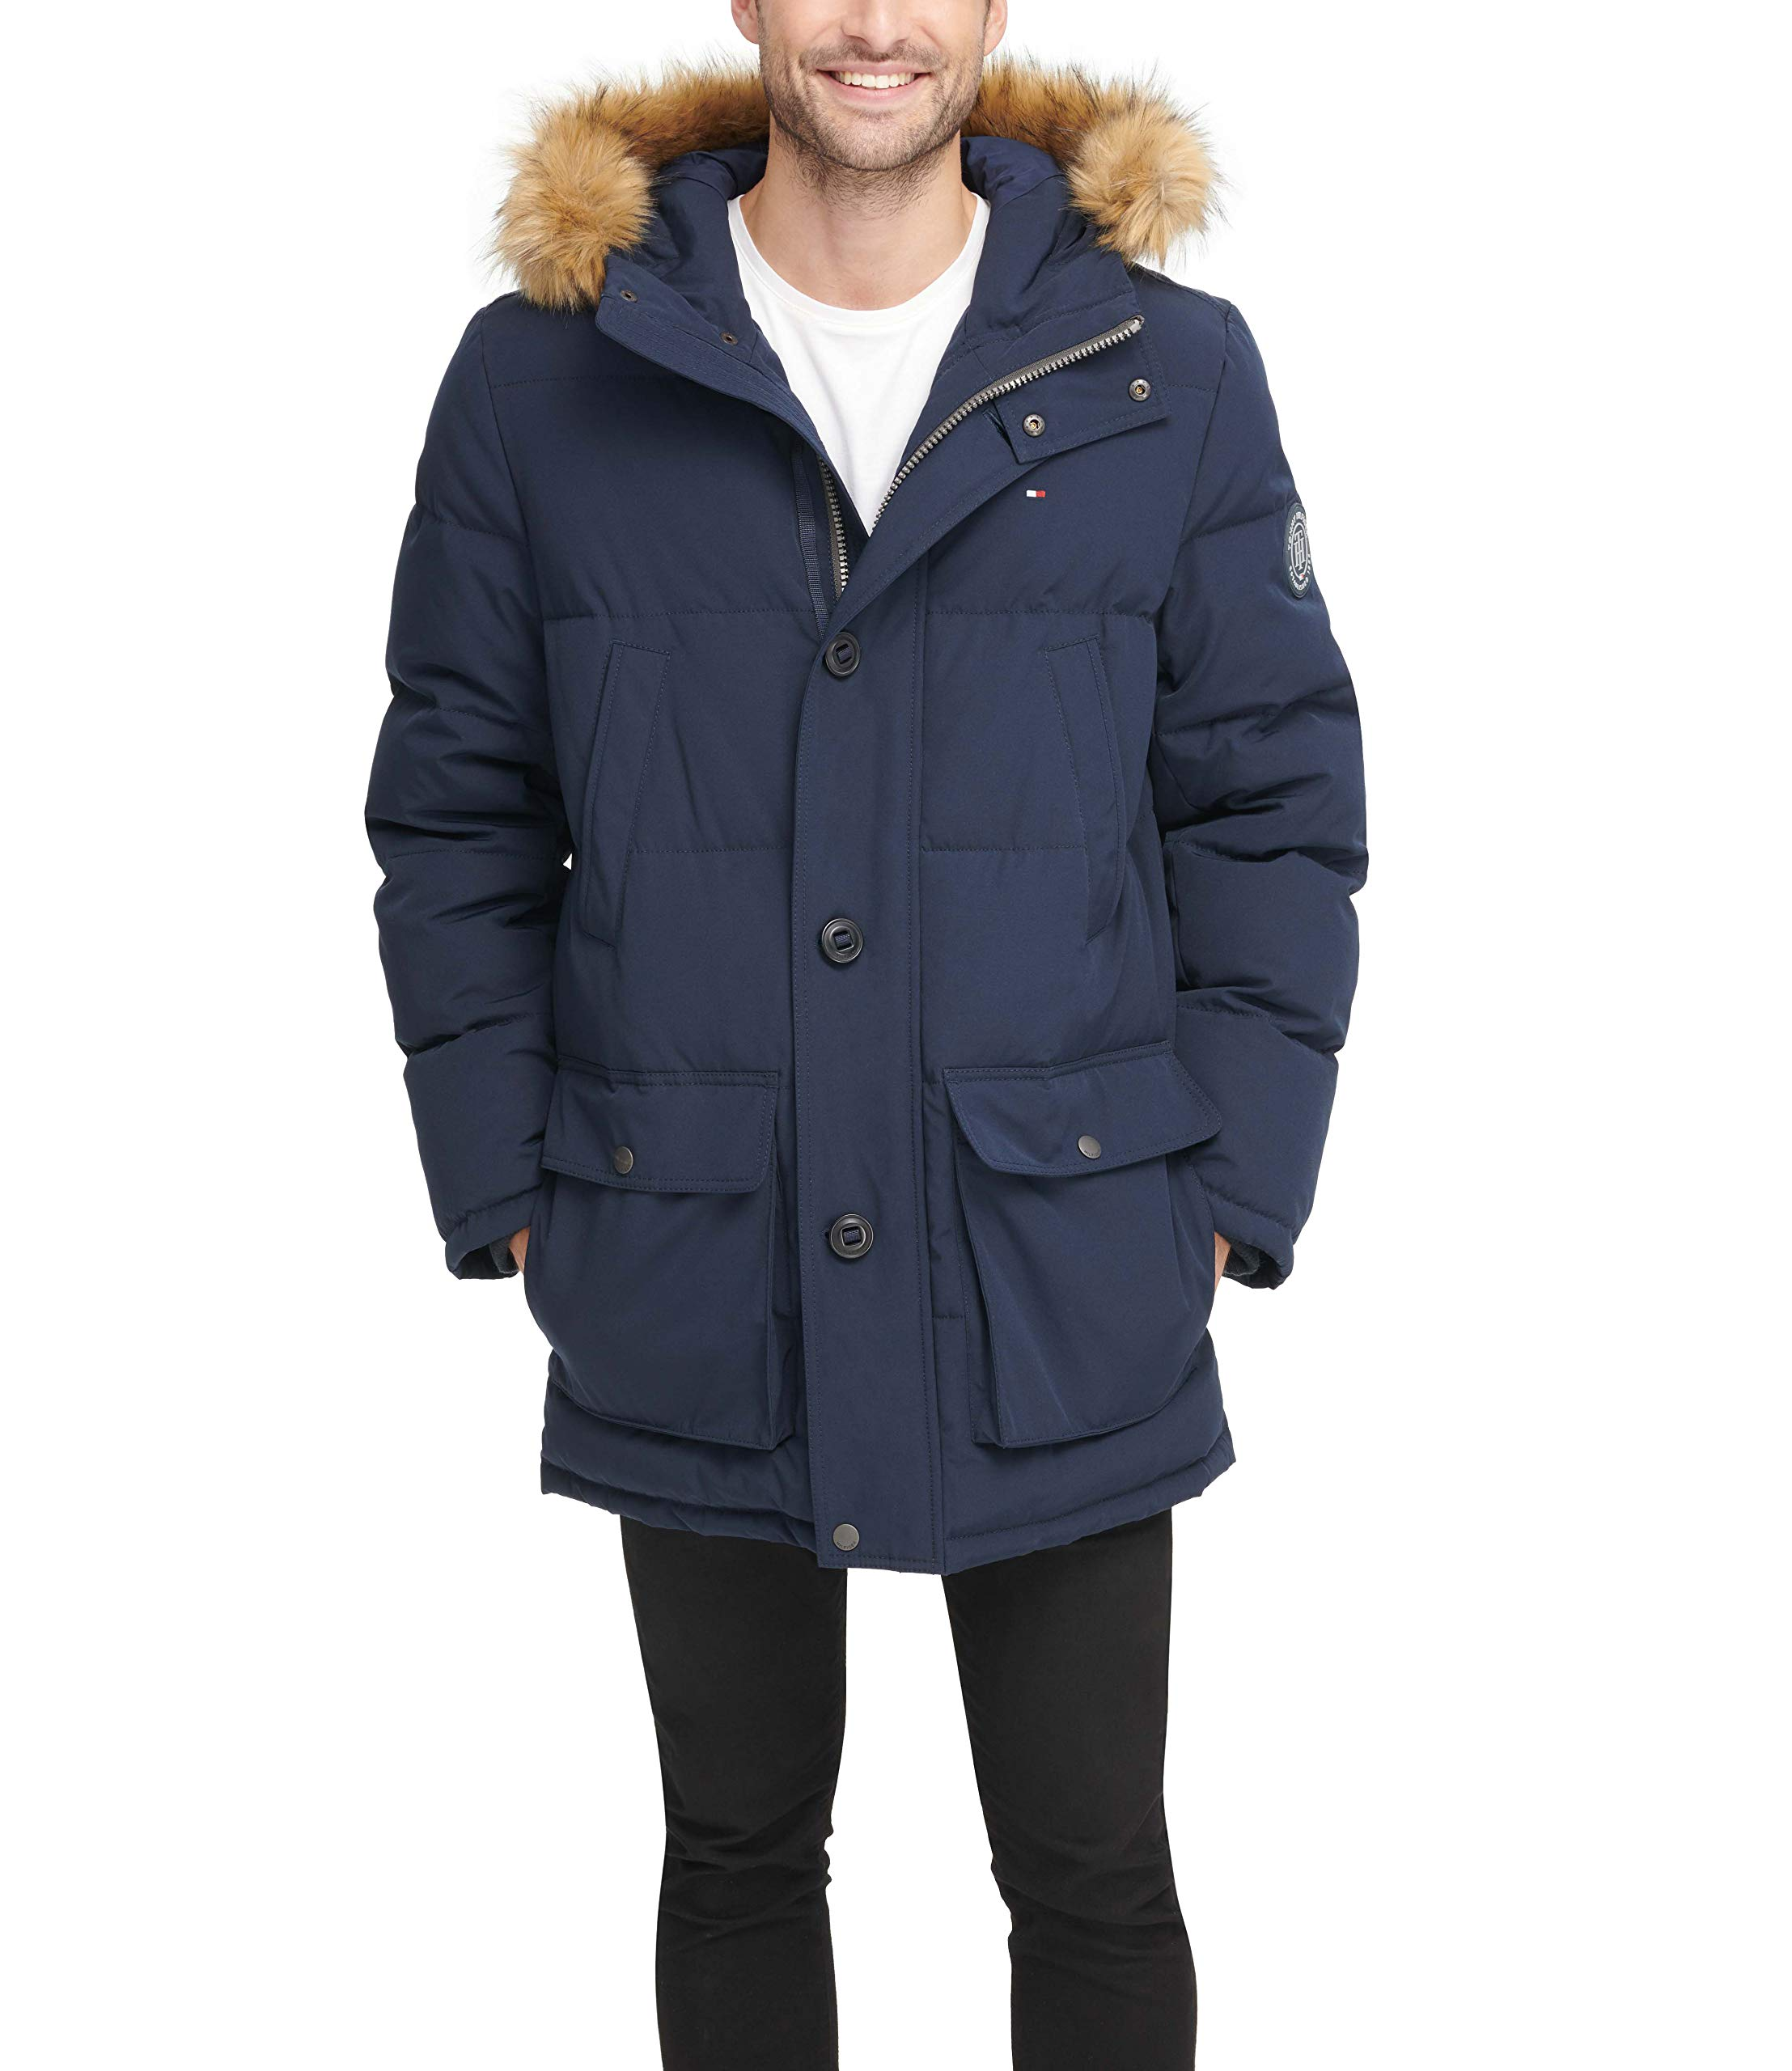 Tommy Hilfiger Men's Arctic Cloth Full Length Quilted Snorkel with Removable Faux Fur Trimmed Hood and Ultra Loft Isulation, Navy, XL by Tommy Hilfiger